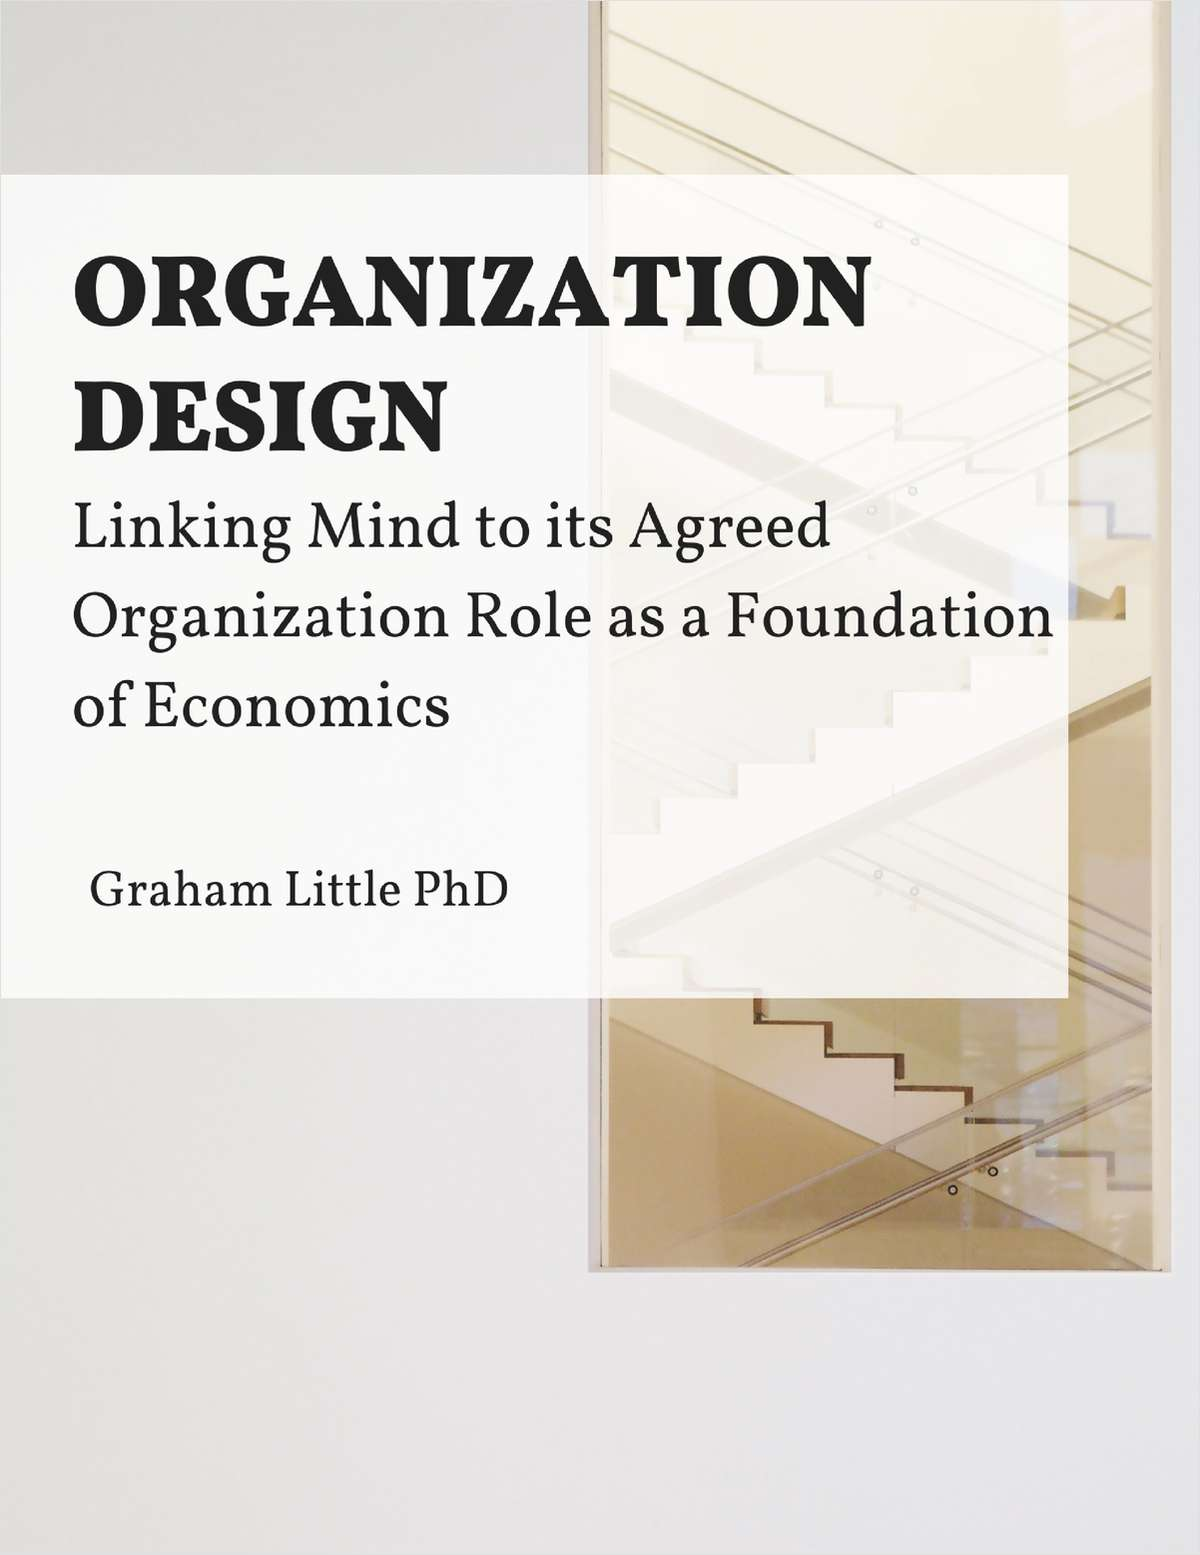 Organization Design - Linking Mind to its Agreed Organization Role as a Foundation of Economics